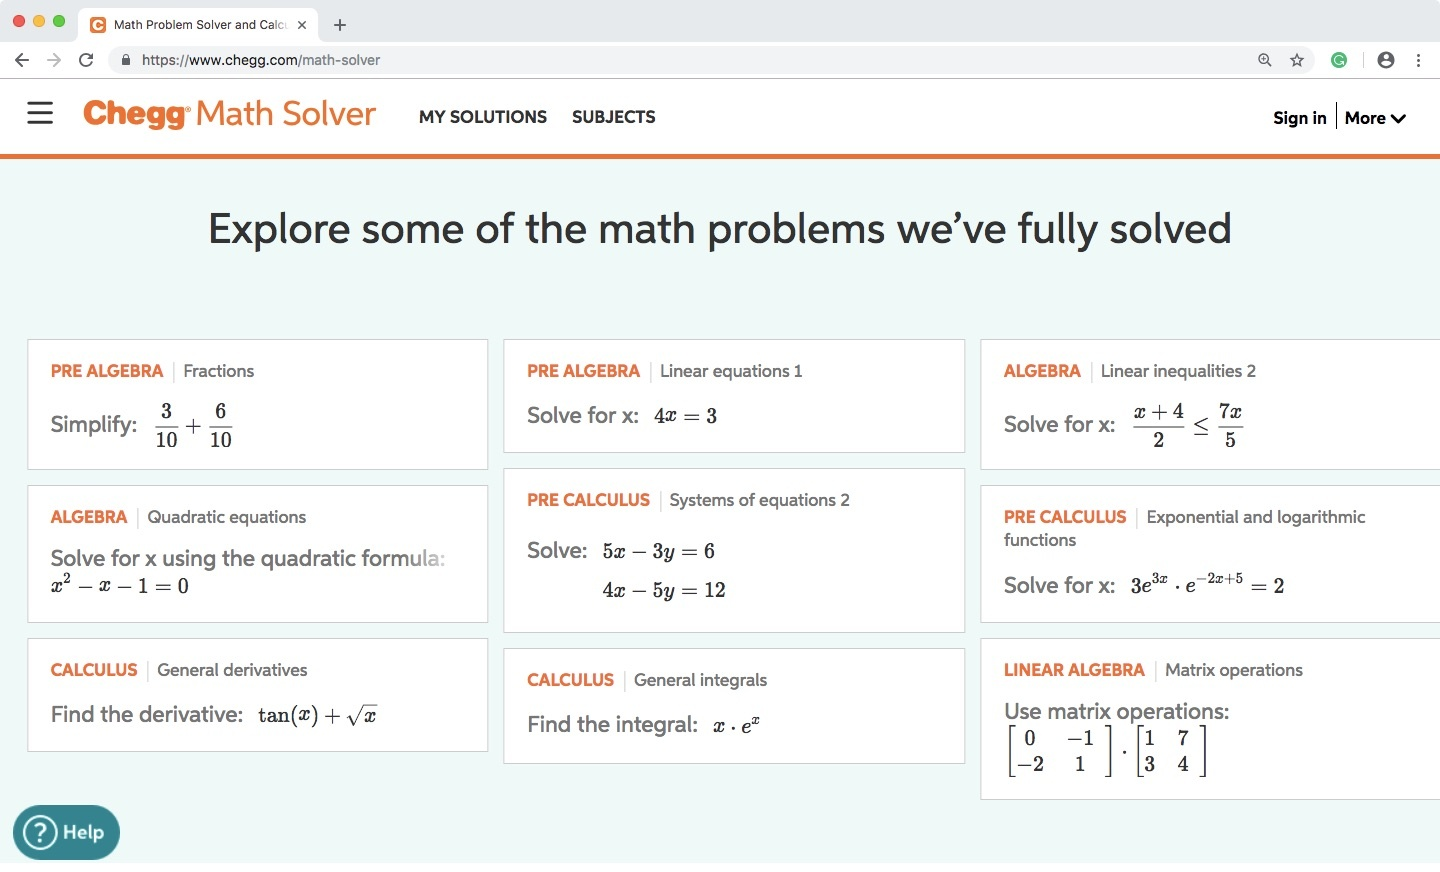 What is the syllabus for other math on Chegg? - Quora